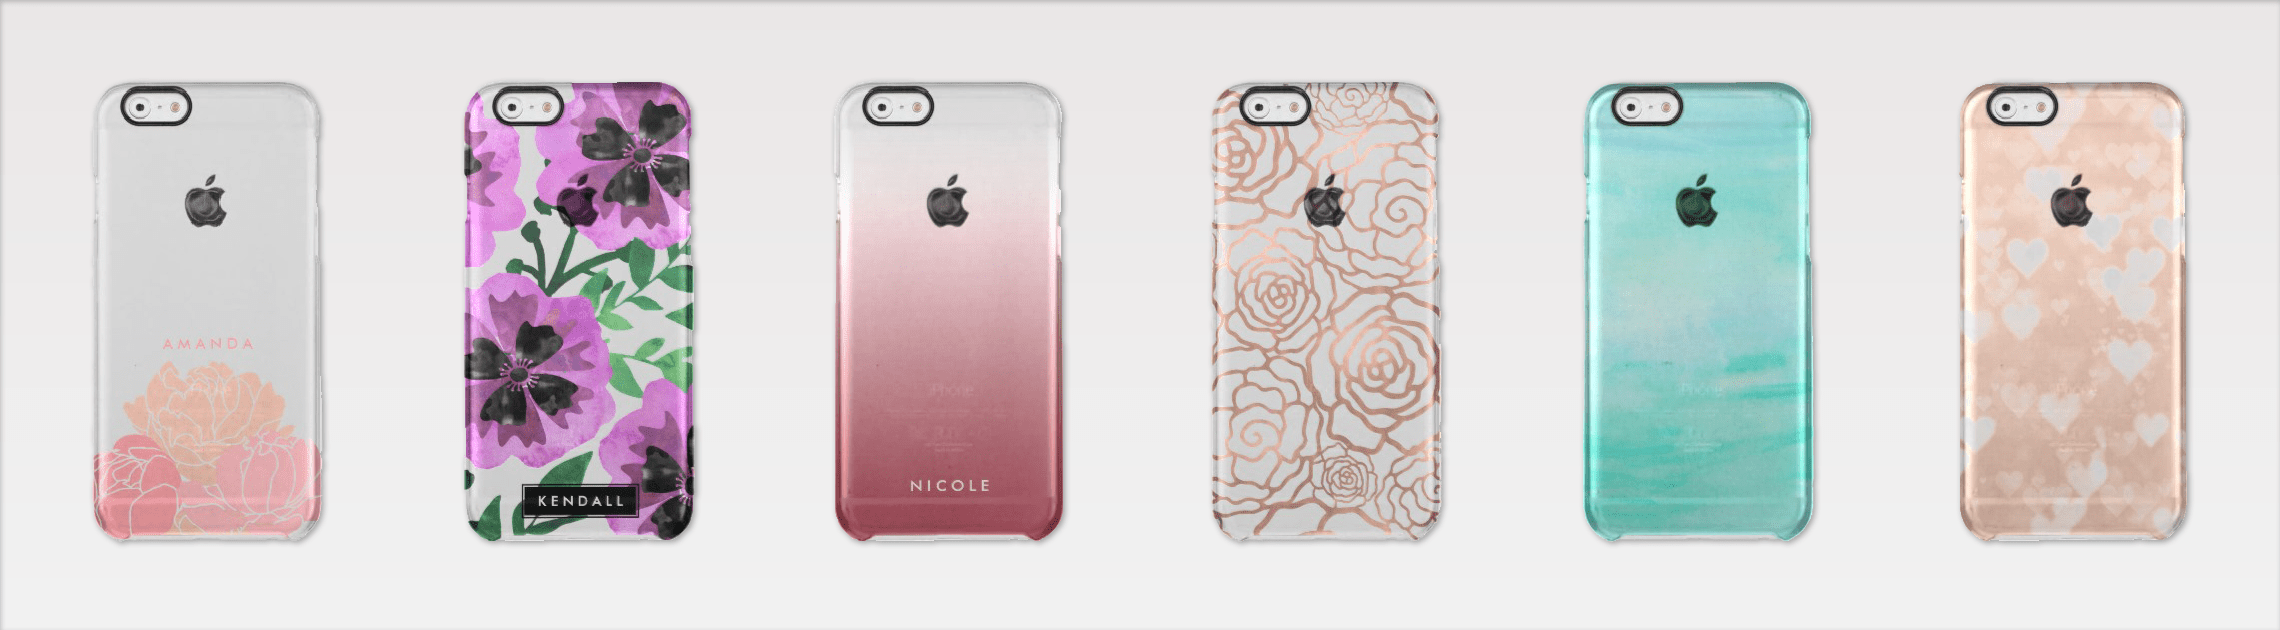 Clear iPhone 6 Cases